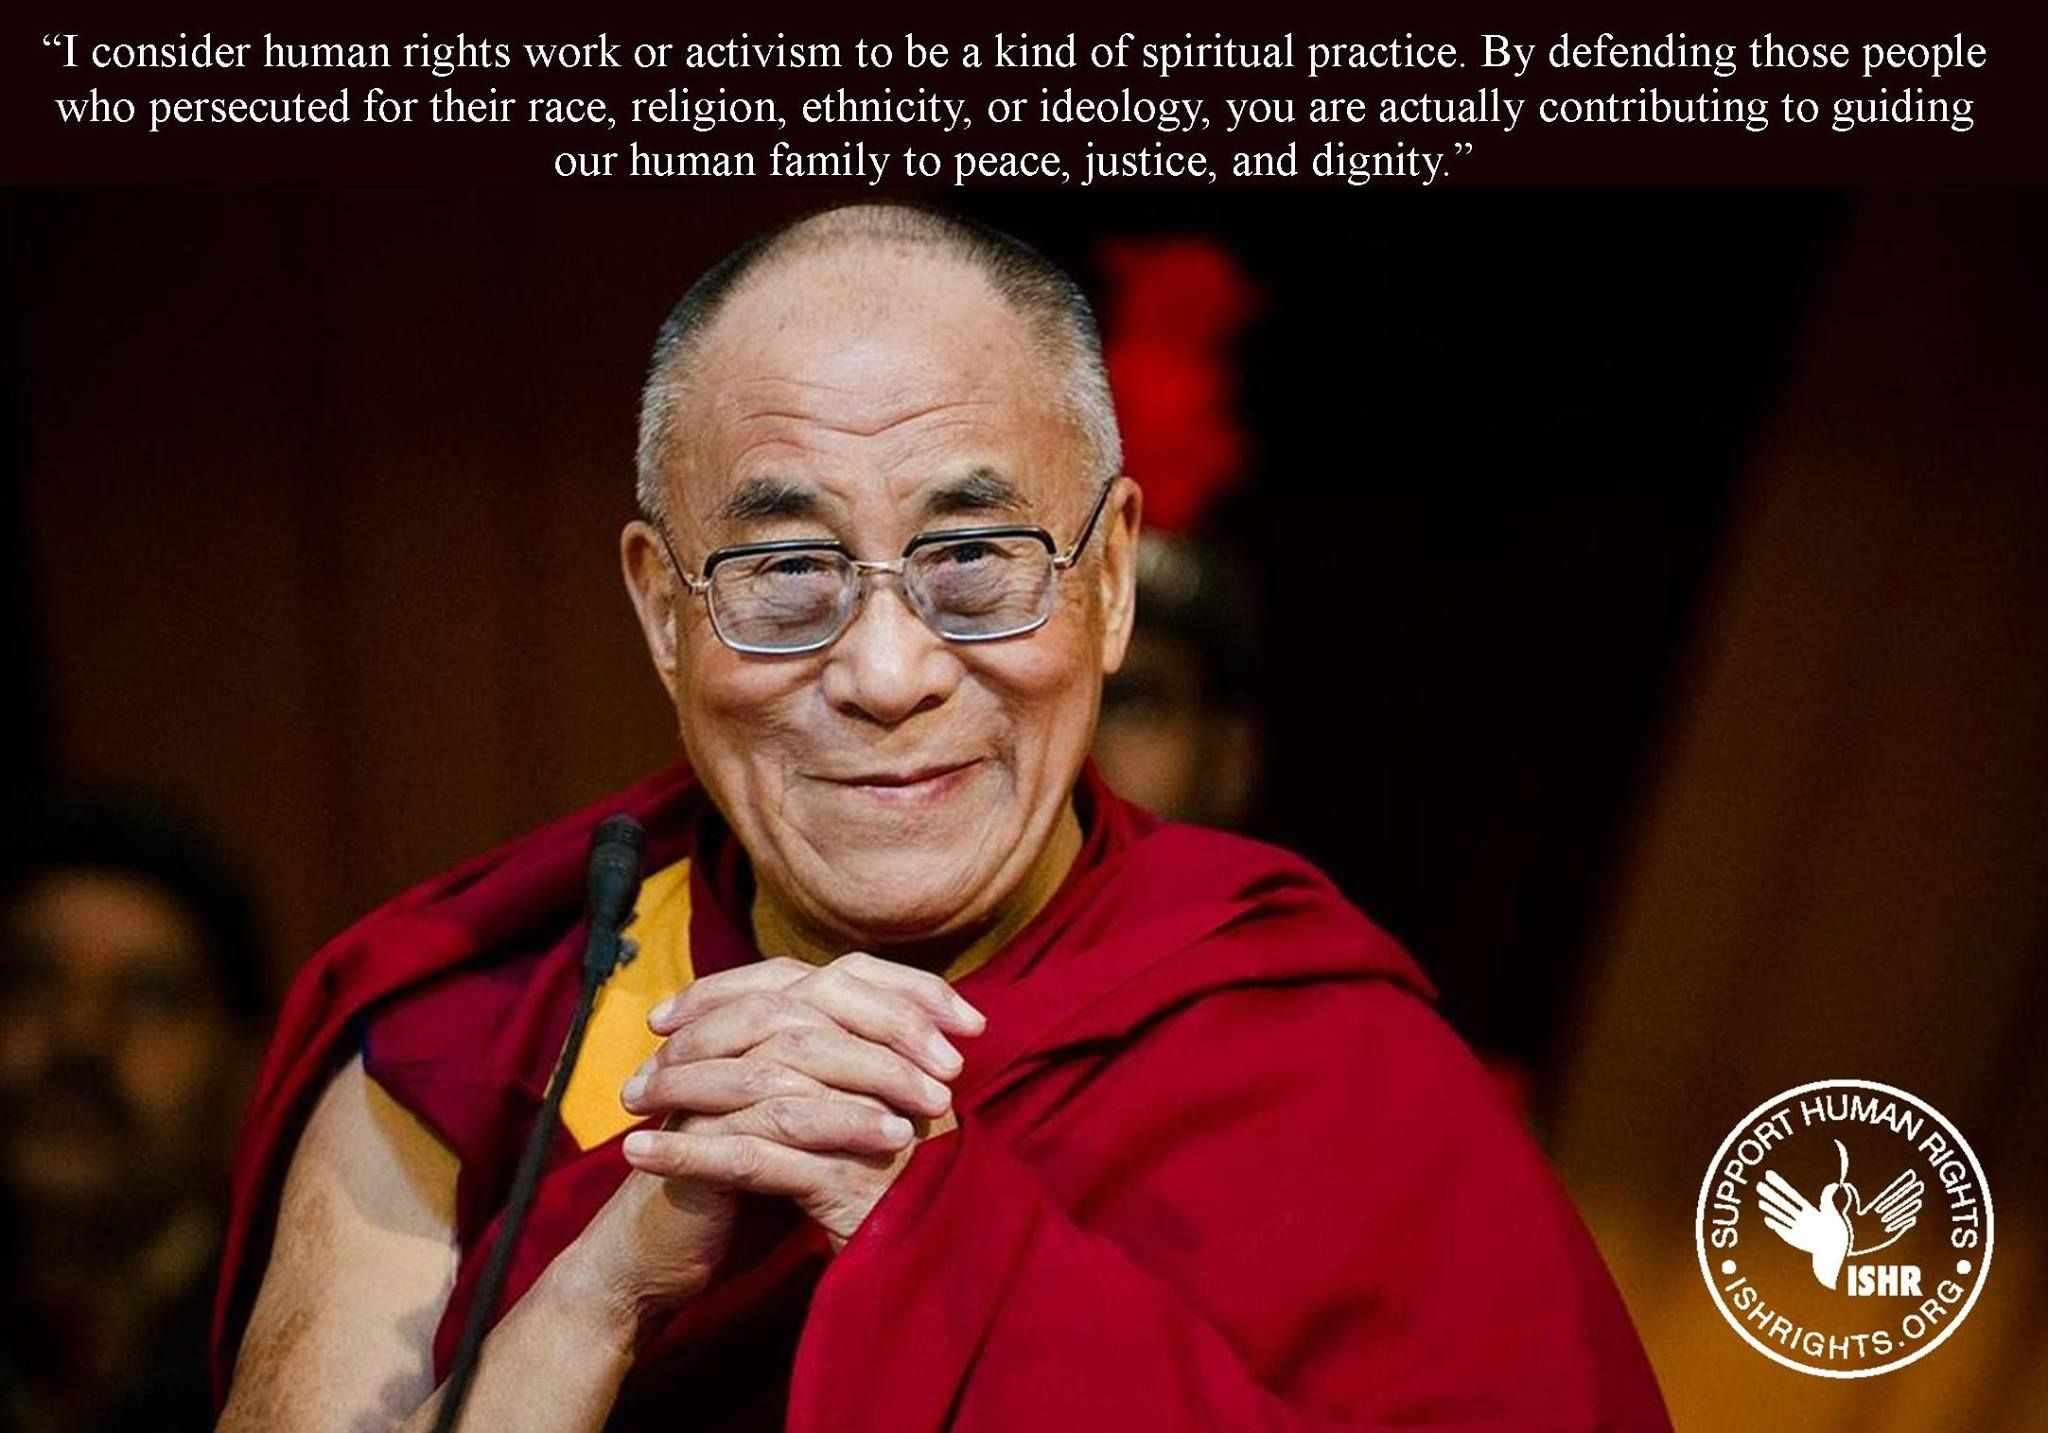 """""""I consider human rights work or activism to be a kind of spiritual practice. By defending those people who persecuted for their race, religion, ethnicity, or ideology, you are actually contributing to guiding our human family to peace, justice, and dignity."""""""